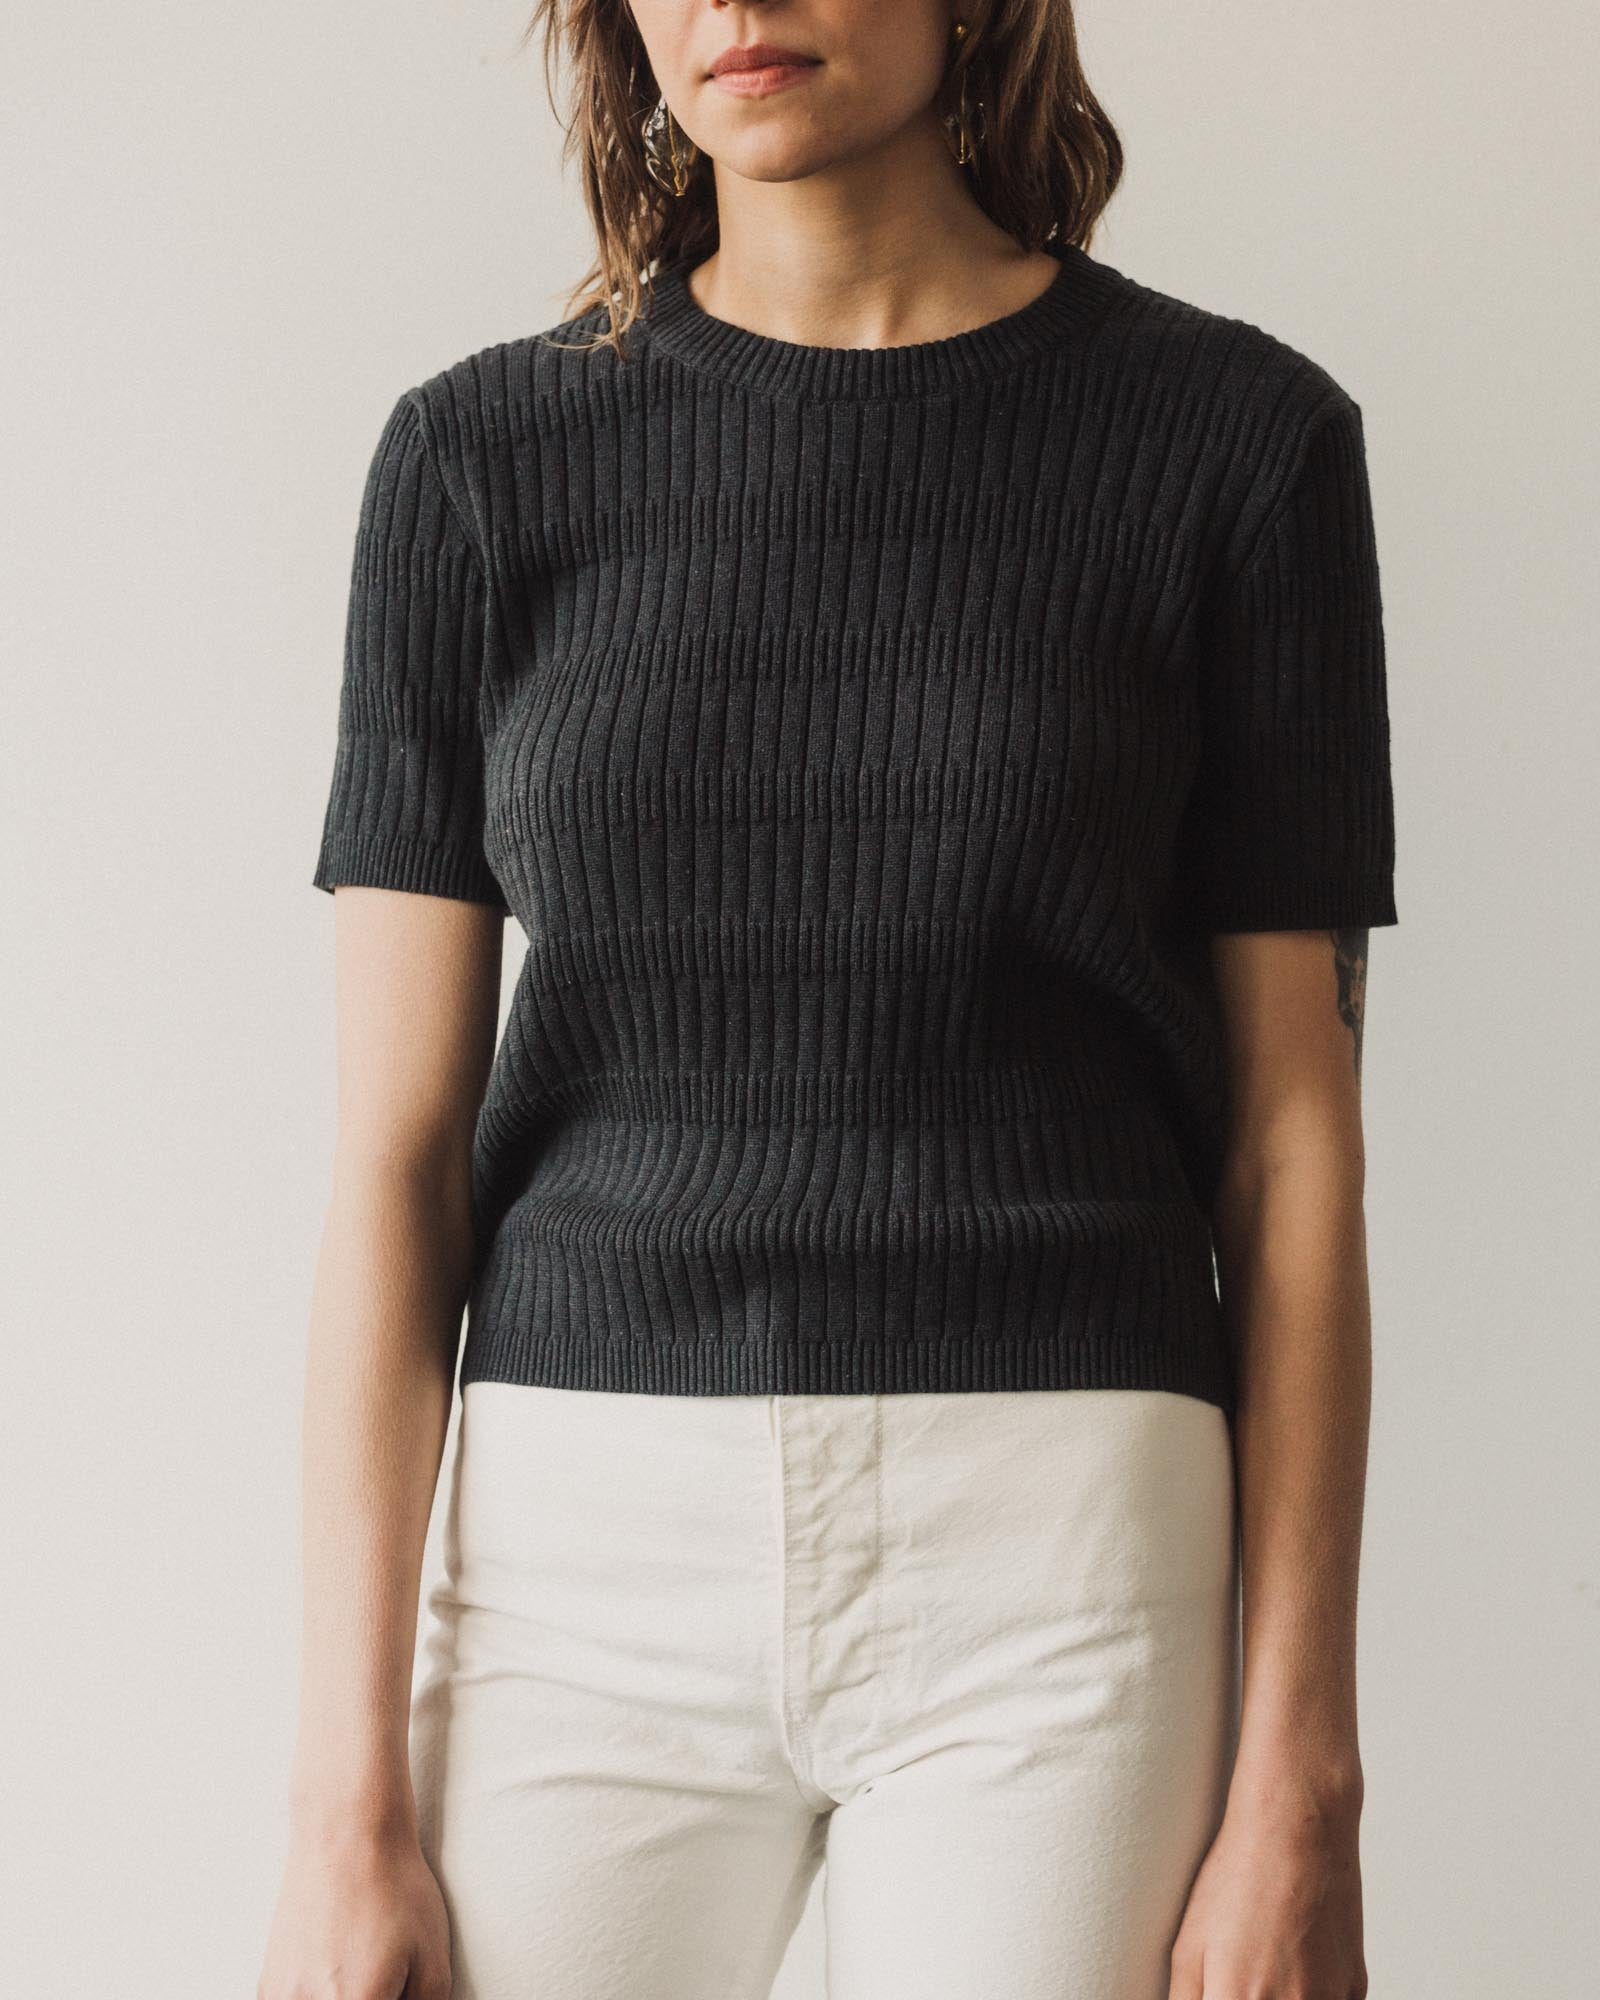 Kowtow Illusion Knitted Tee, Charcoal